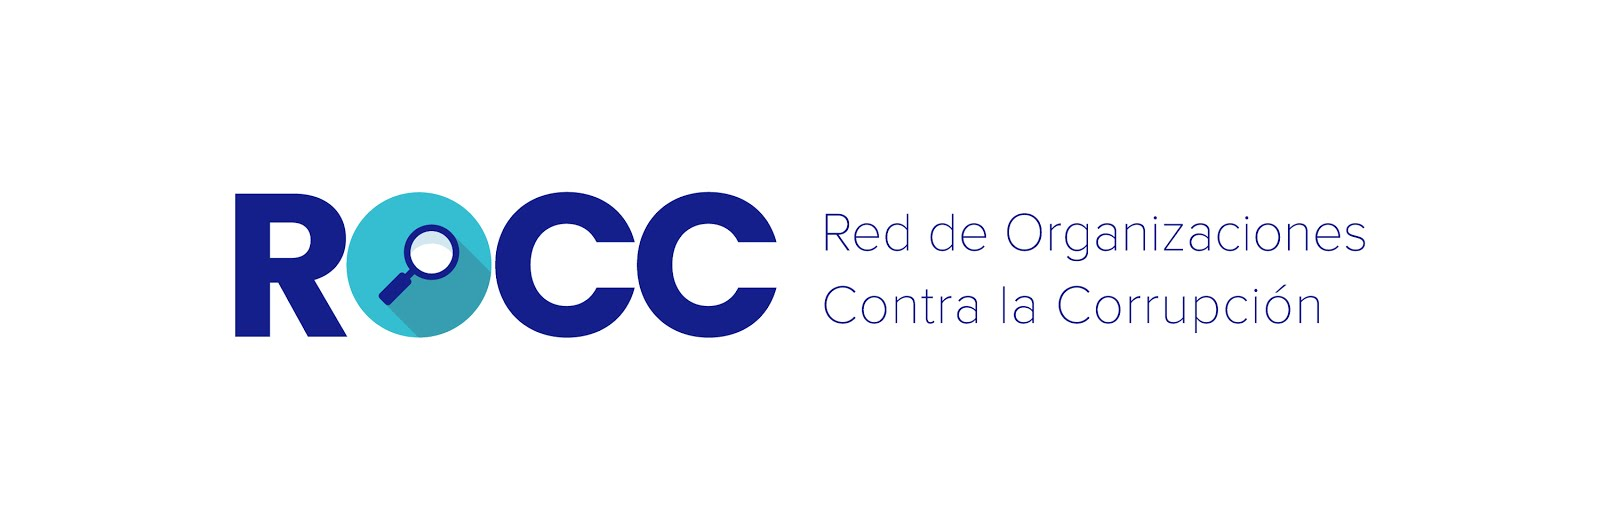 Salta Transparente integra la ROCC